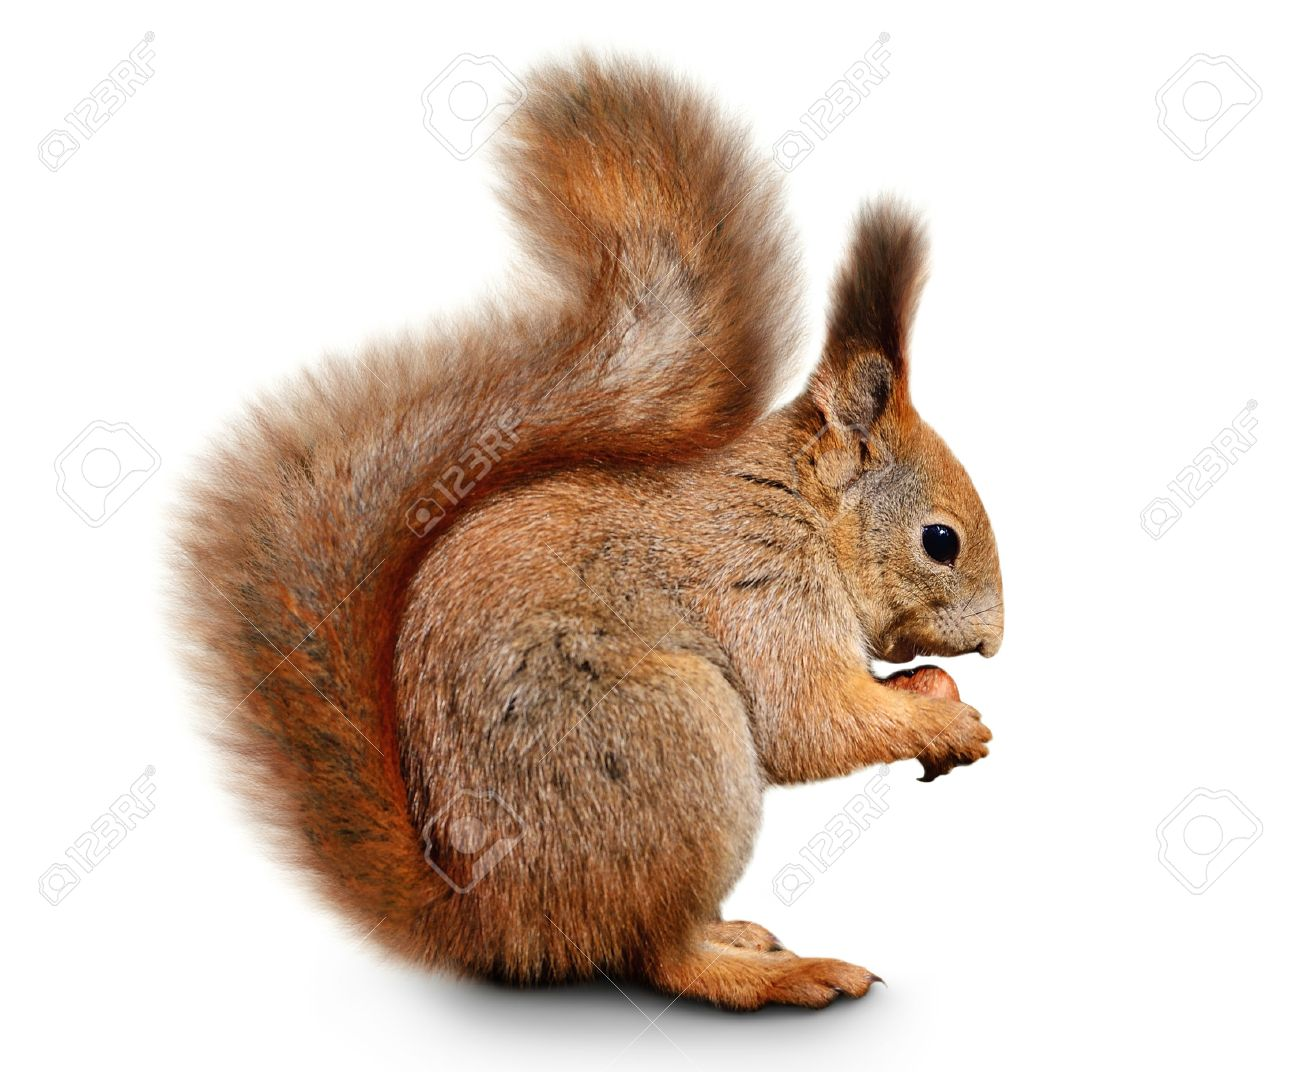 squirrel images u0026 stock pictures royalty free squirrel photos and